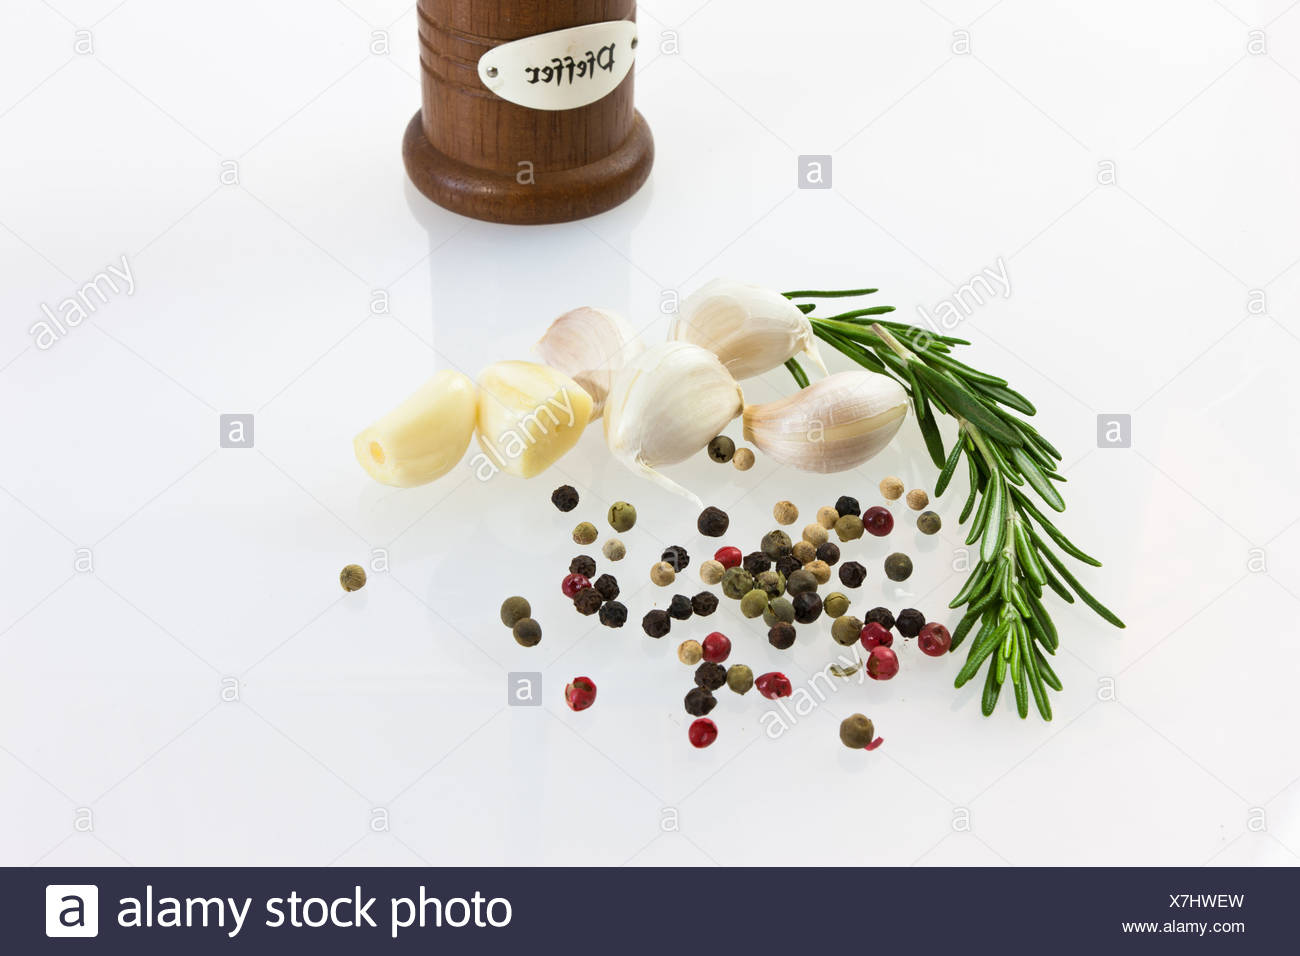 Garlic (Allium sativum) with pepper mill, fresh rosemary, black and red pepper - Stock Image